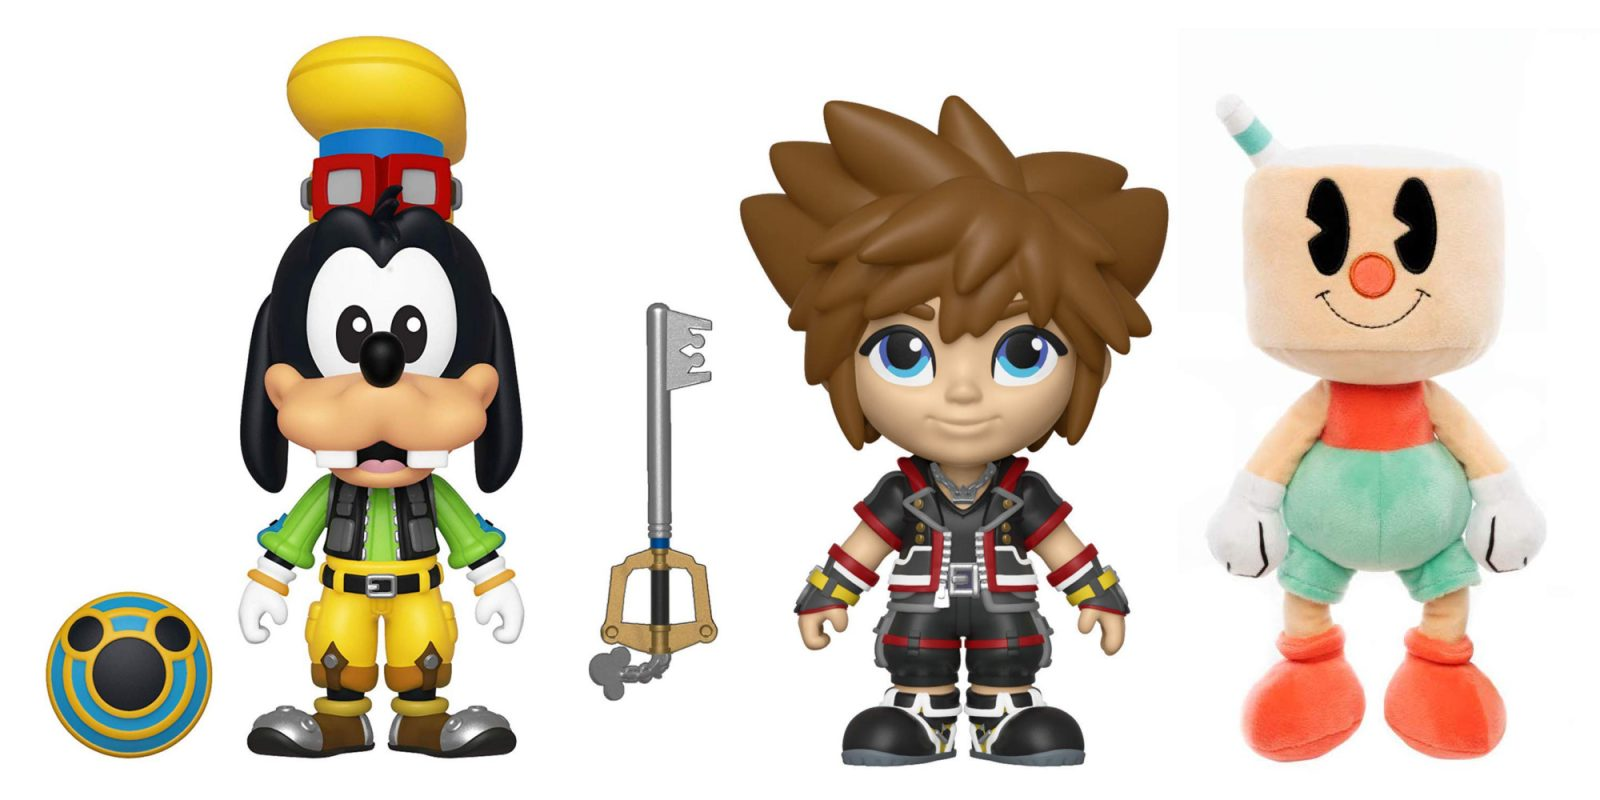 GameStop is blowing out Funko collectibles at up to 40% off, deals from $4